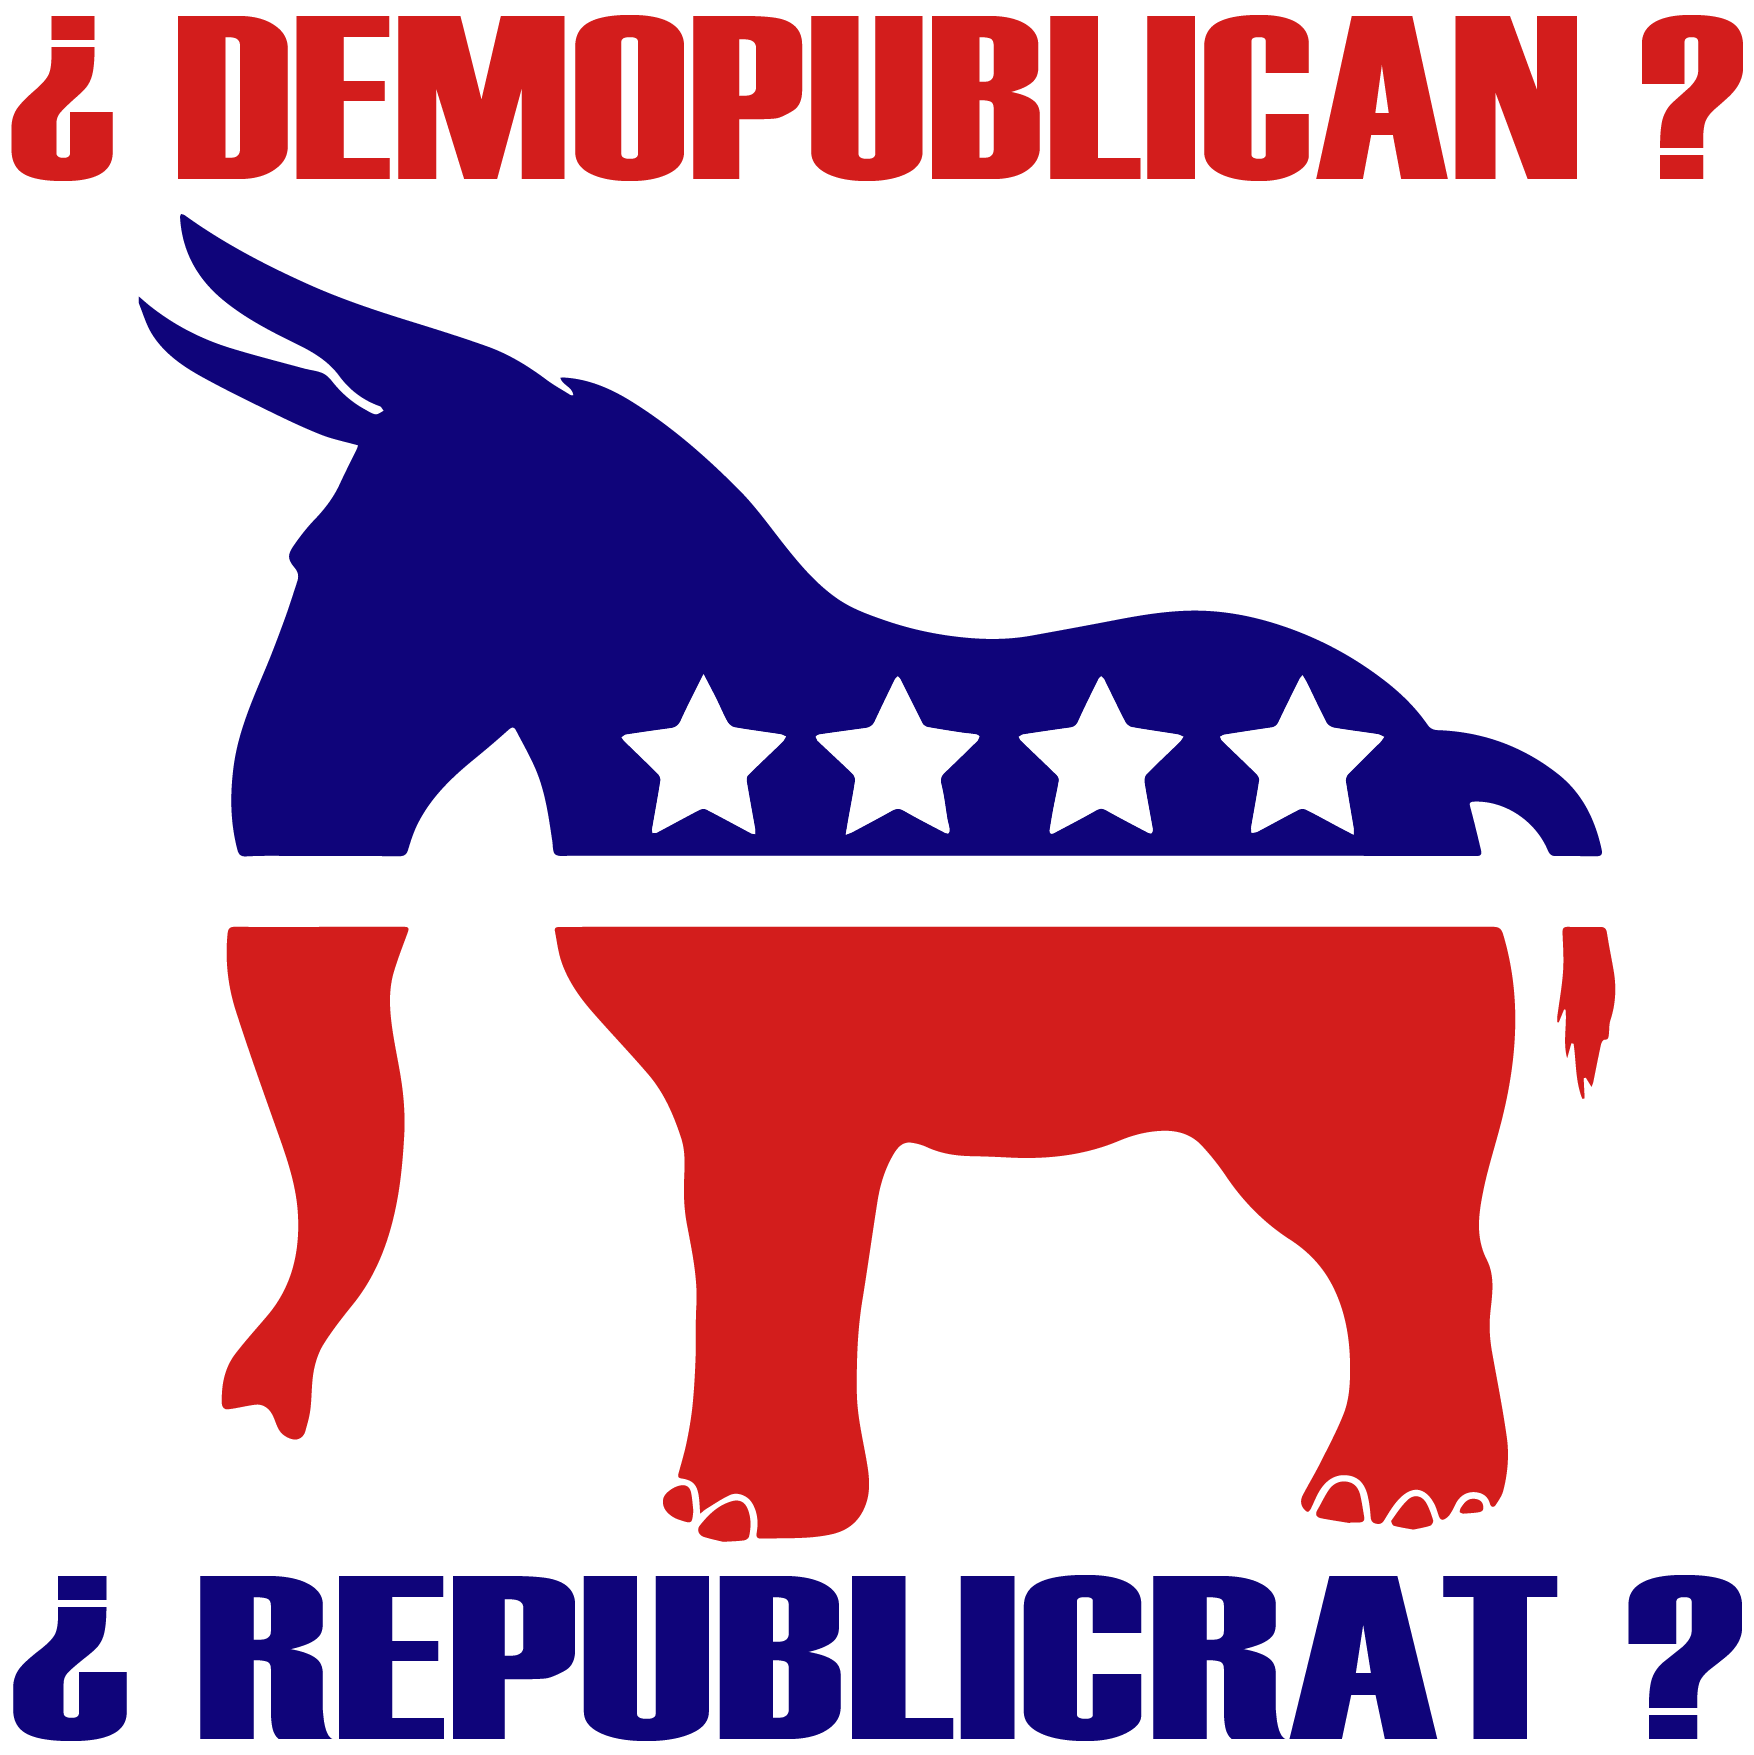 demopublican-republicrat-usa-split-divided-nation-failing-state-kritisches-netzwerk-republican-democratic-party-republicans-republikaner-demokraten-democrats-america-first-trump